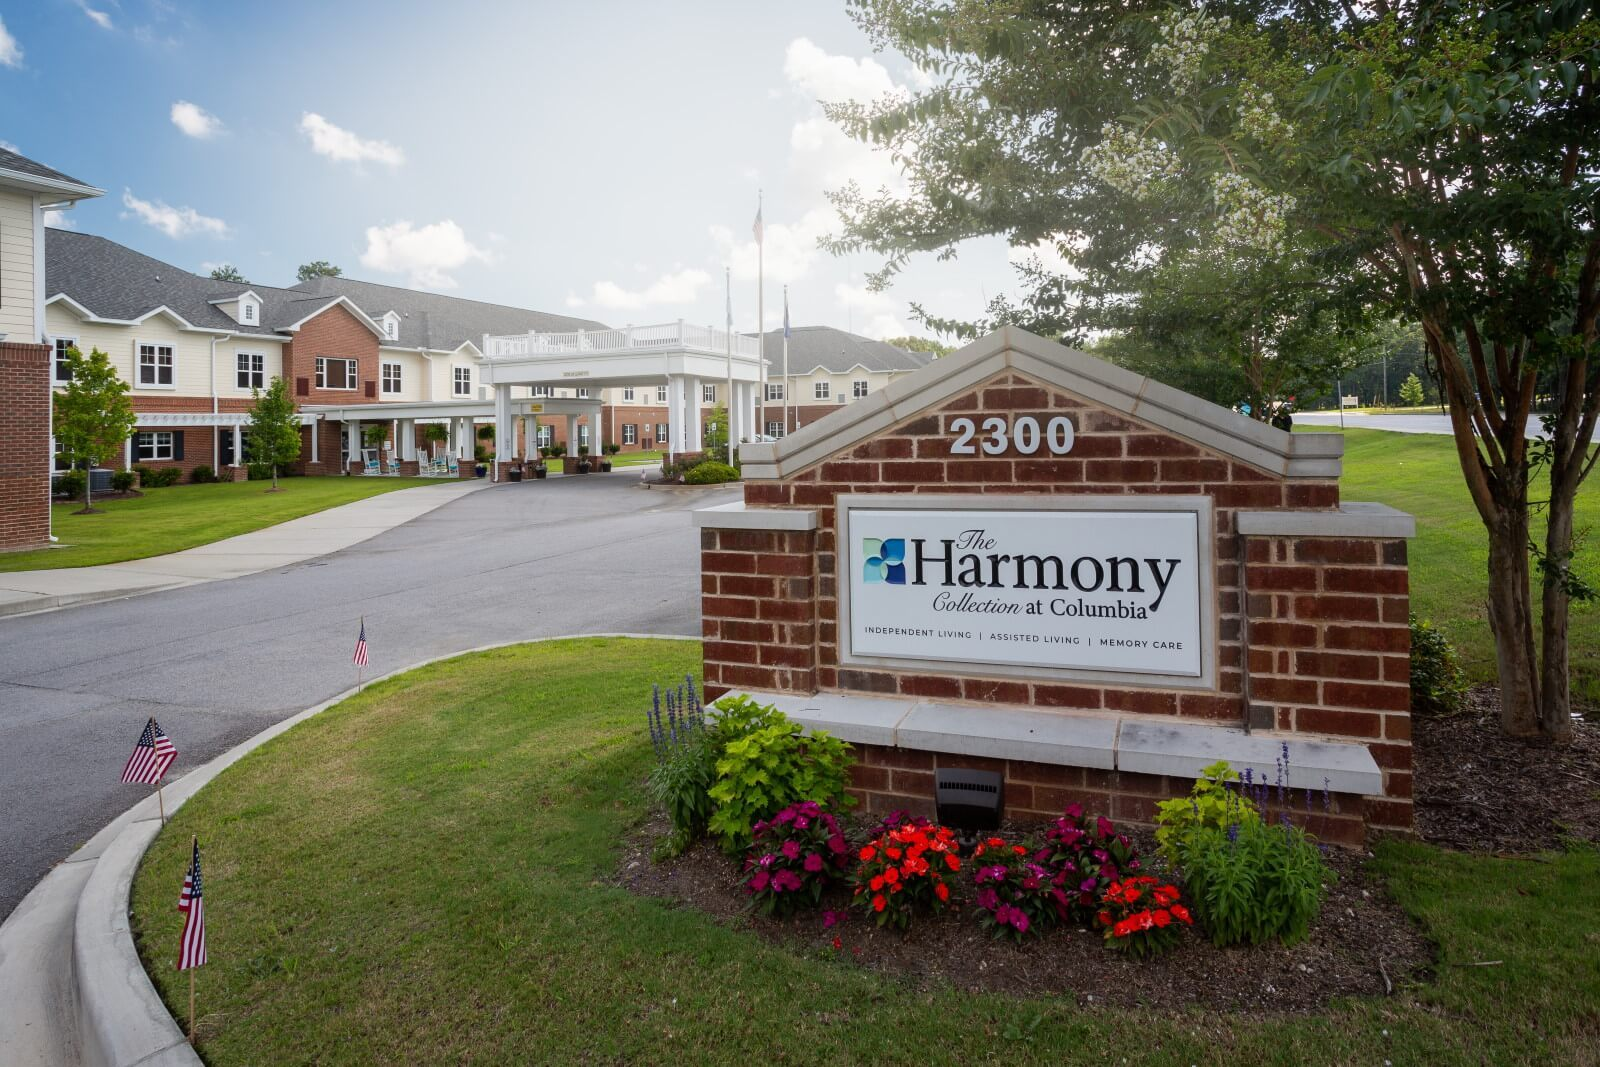 Harmony-Collection-at-Columbia-Exterior-4